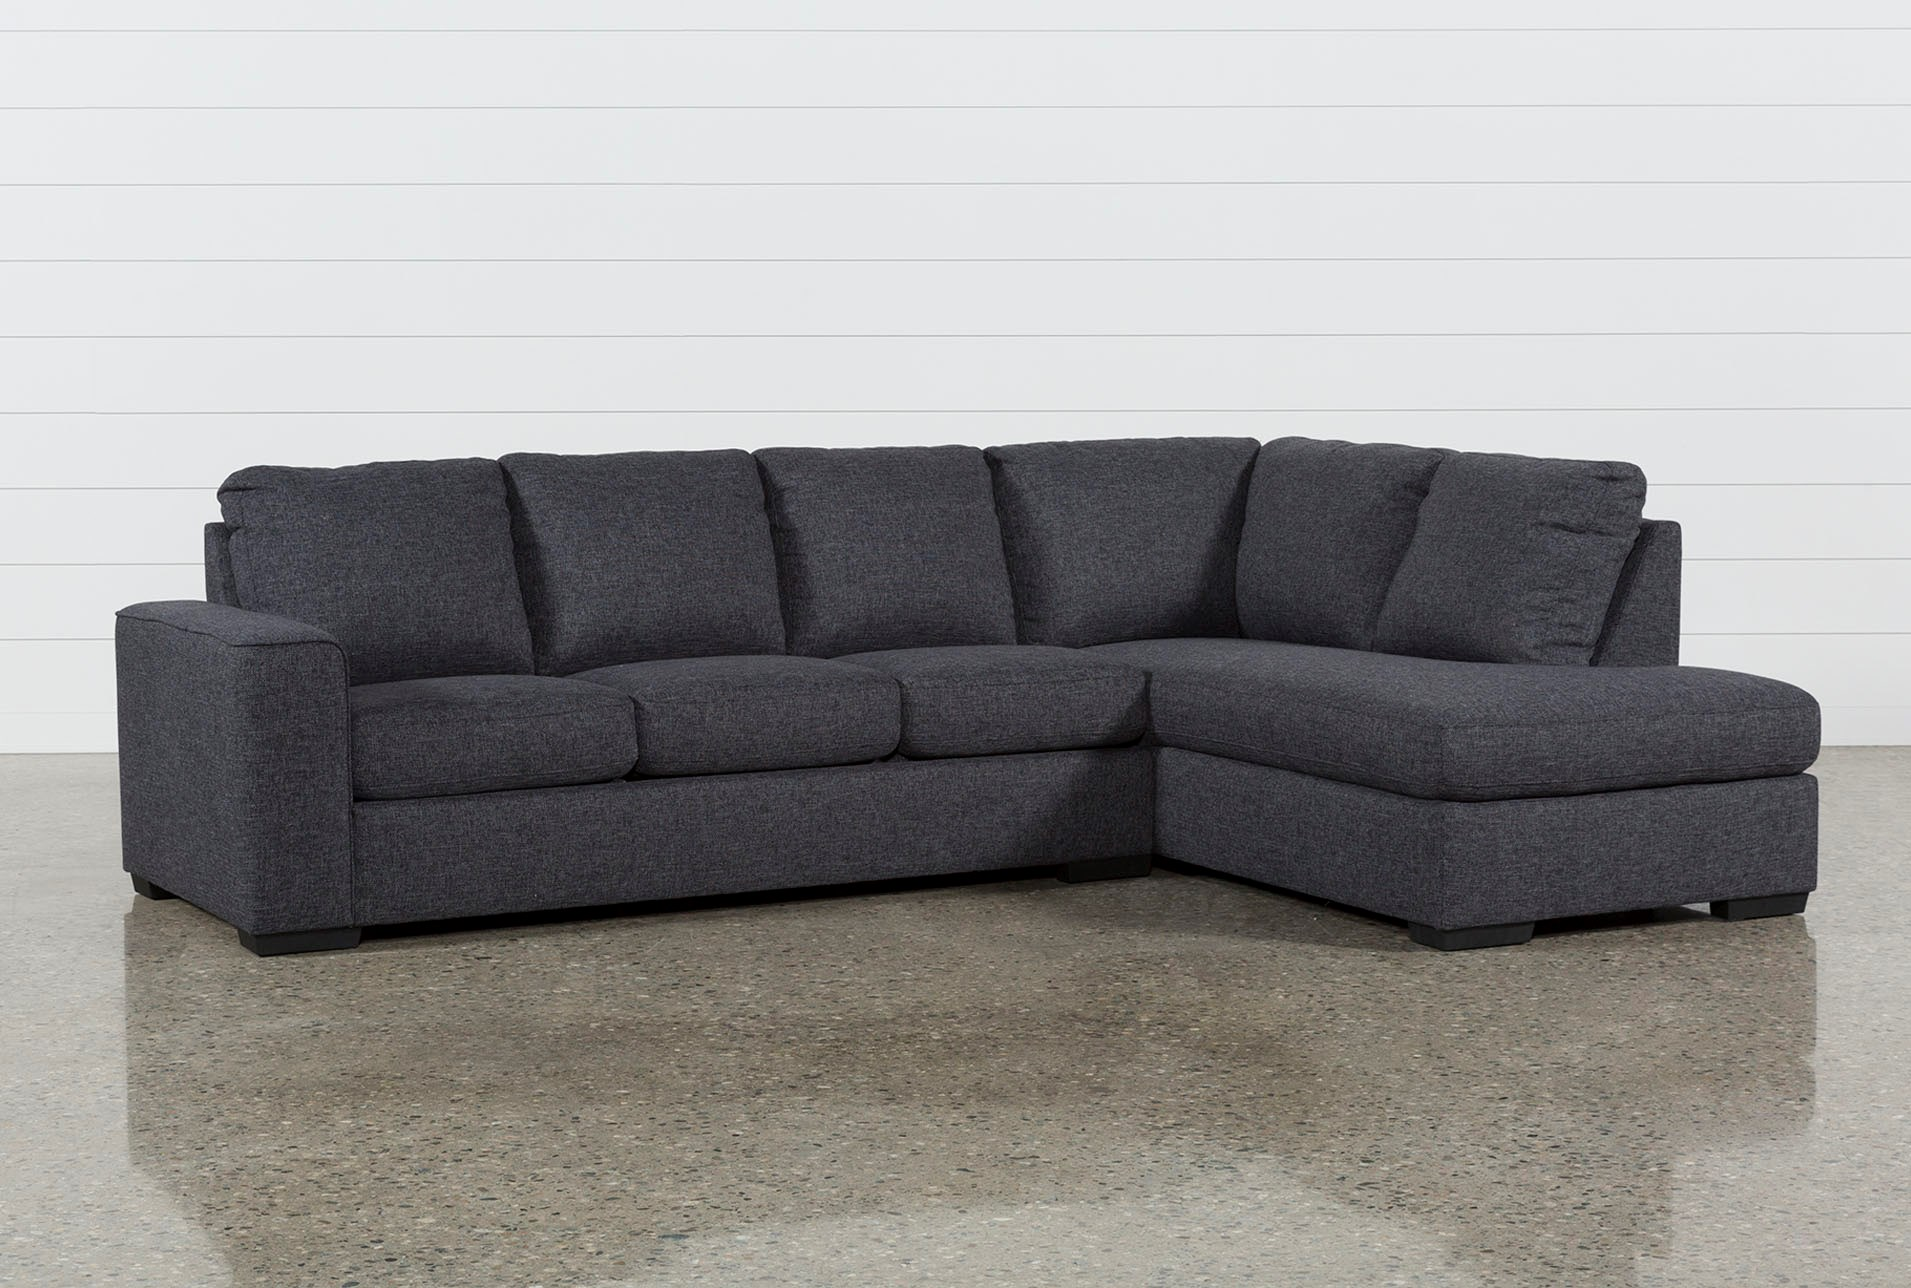 bed recliners comfortable leather queen sectional sofa fabric sleeper with